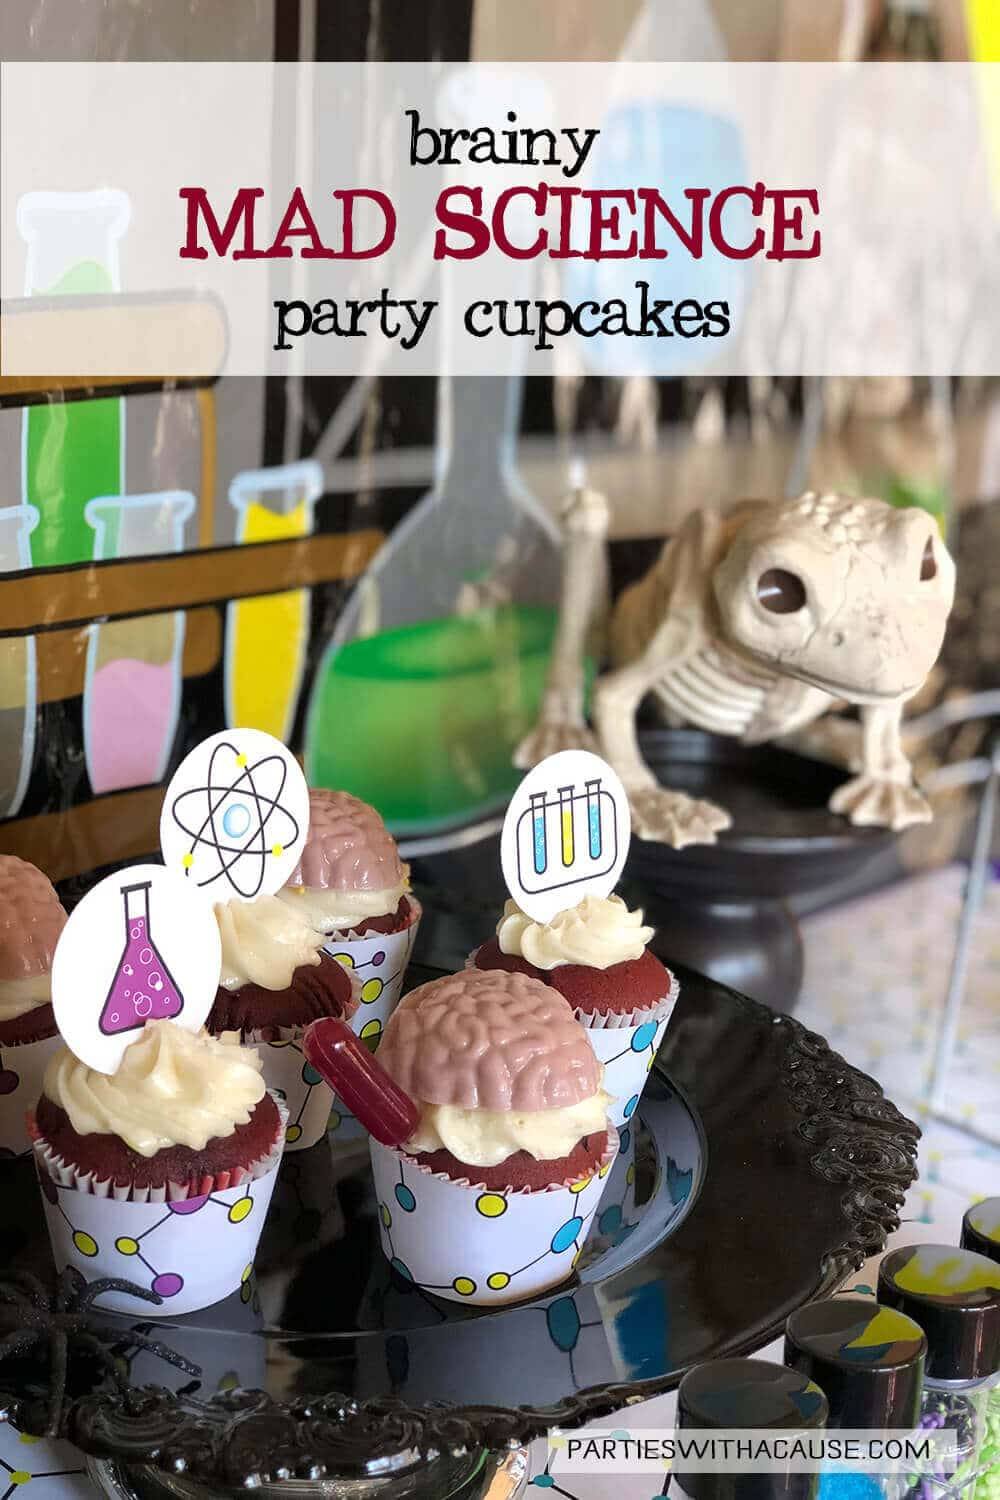 Admirable Brainy Mad Science Party Cupcakes Parties With A Cause Personalised Birthday Cards Petedlily Jamesorg